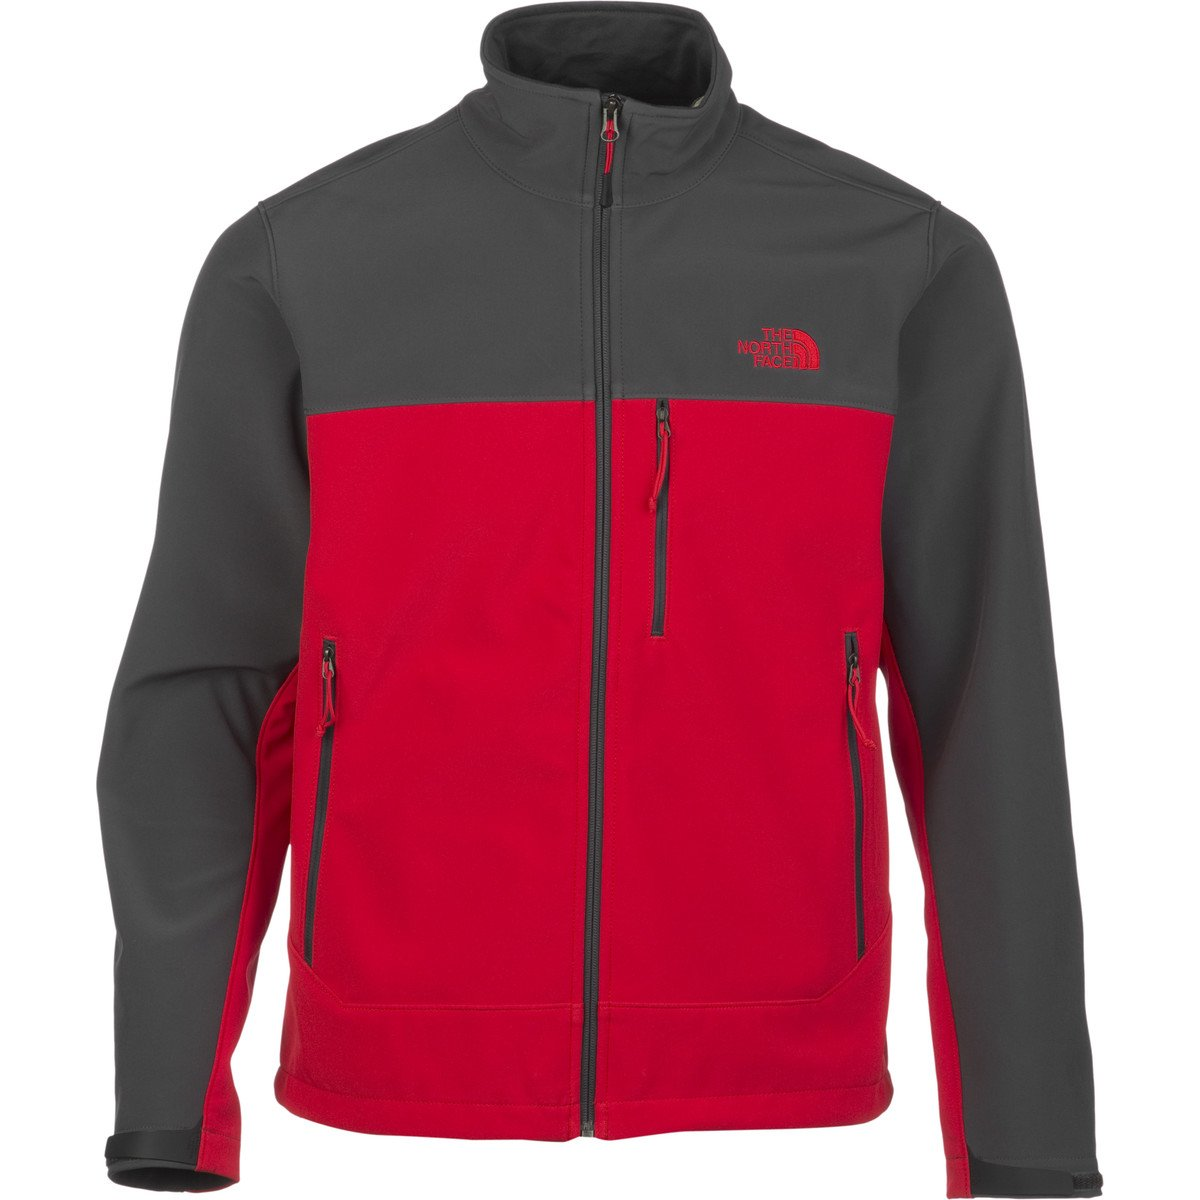 e7a8ce87a3 Amazon.com  The North Face Apex Bionic Soft Shell Jacket - Men s  Clothing